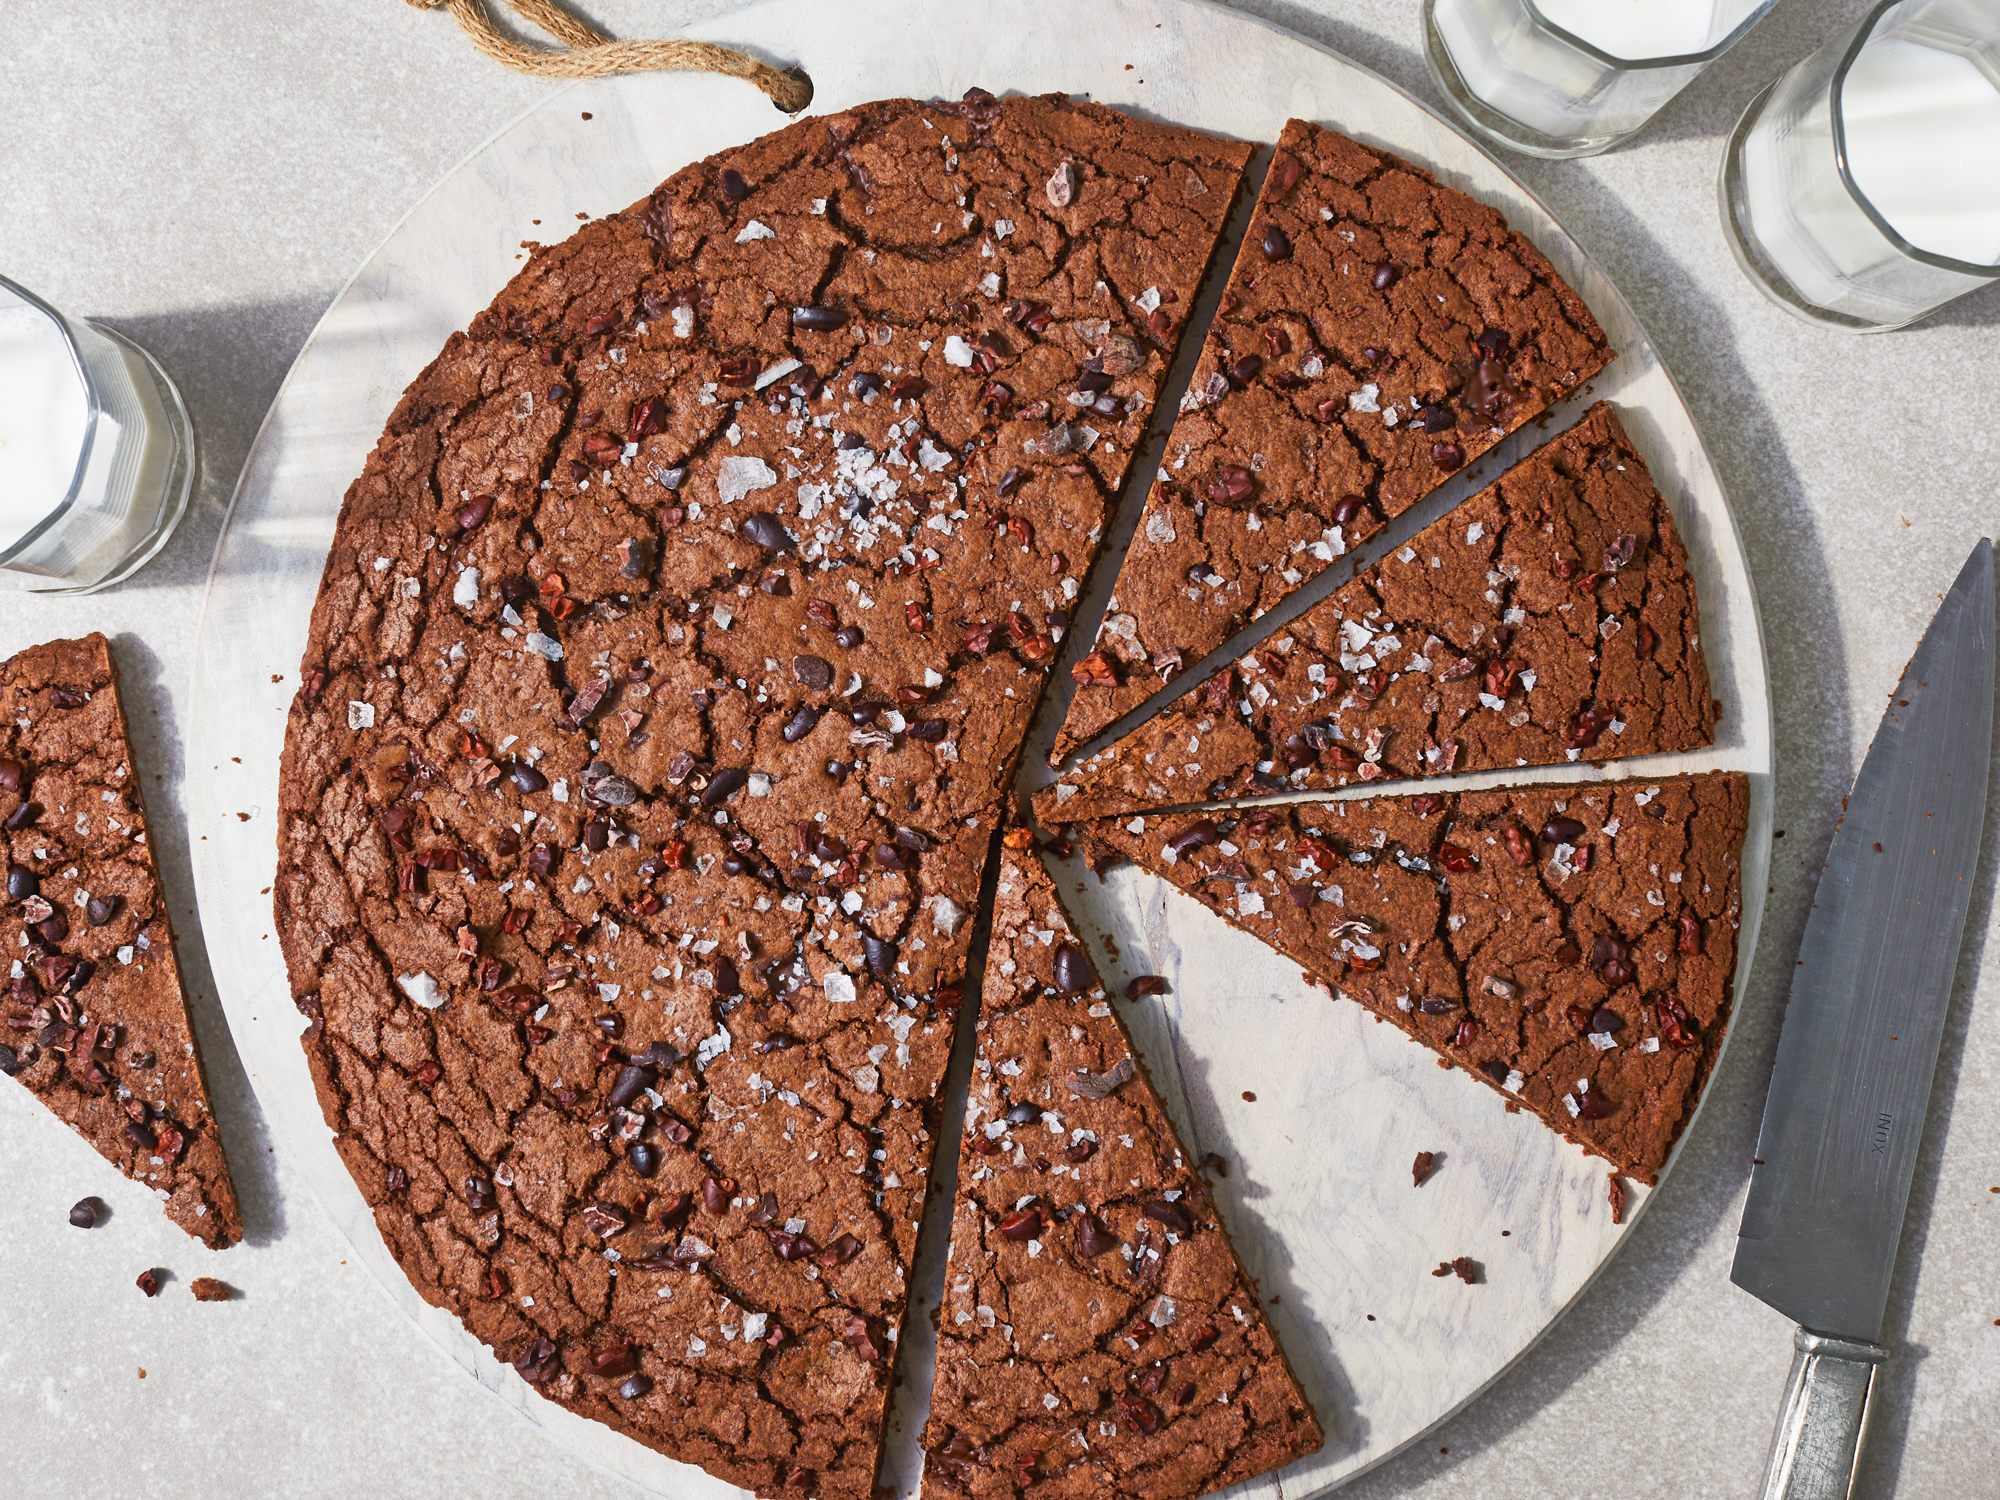 Giant Salty Chocolate Cookie with Cacao Nibs Recipe